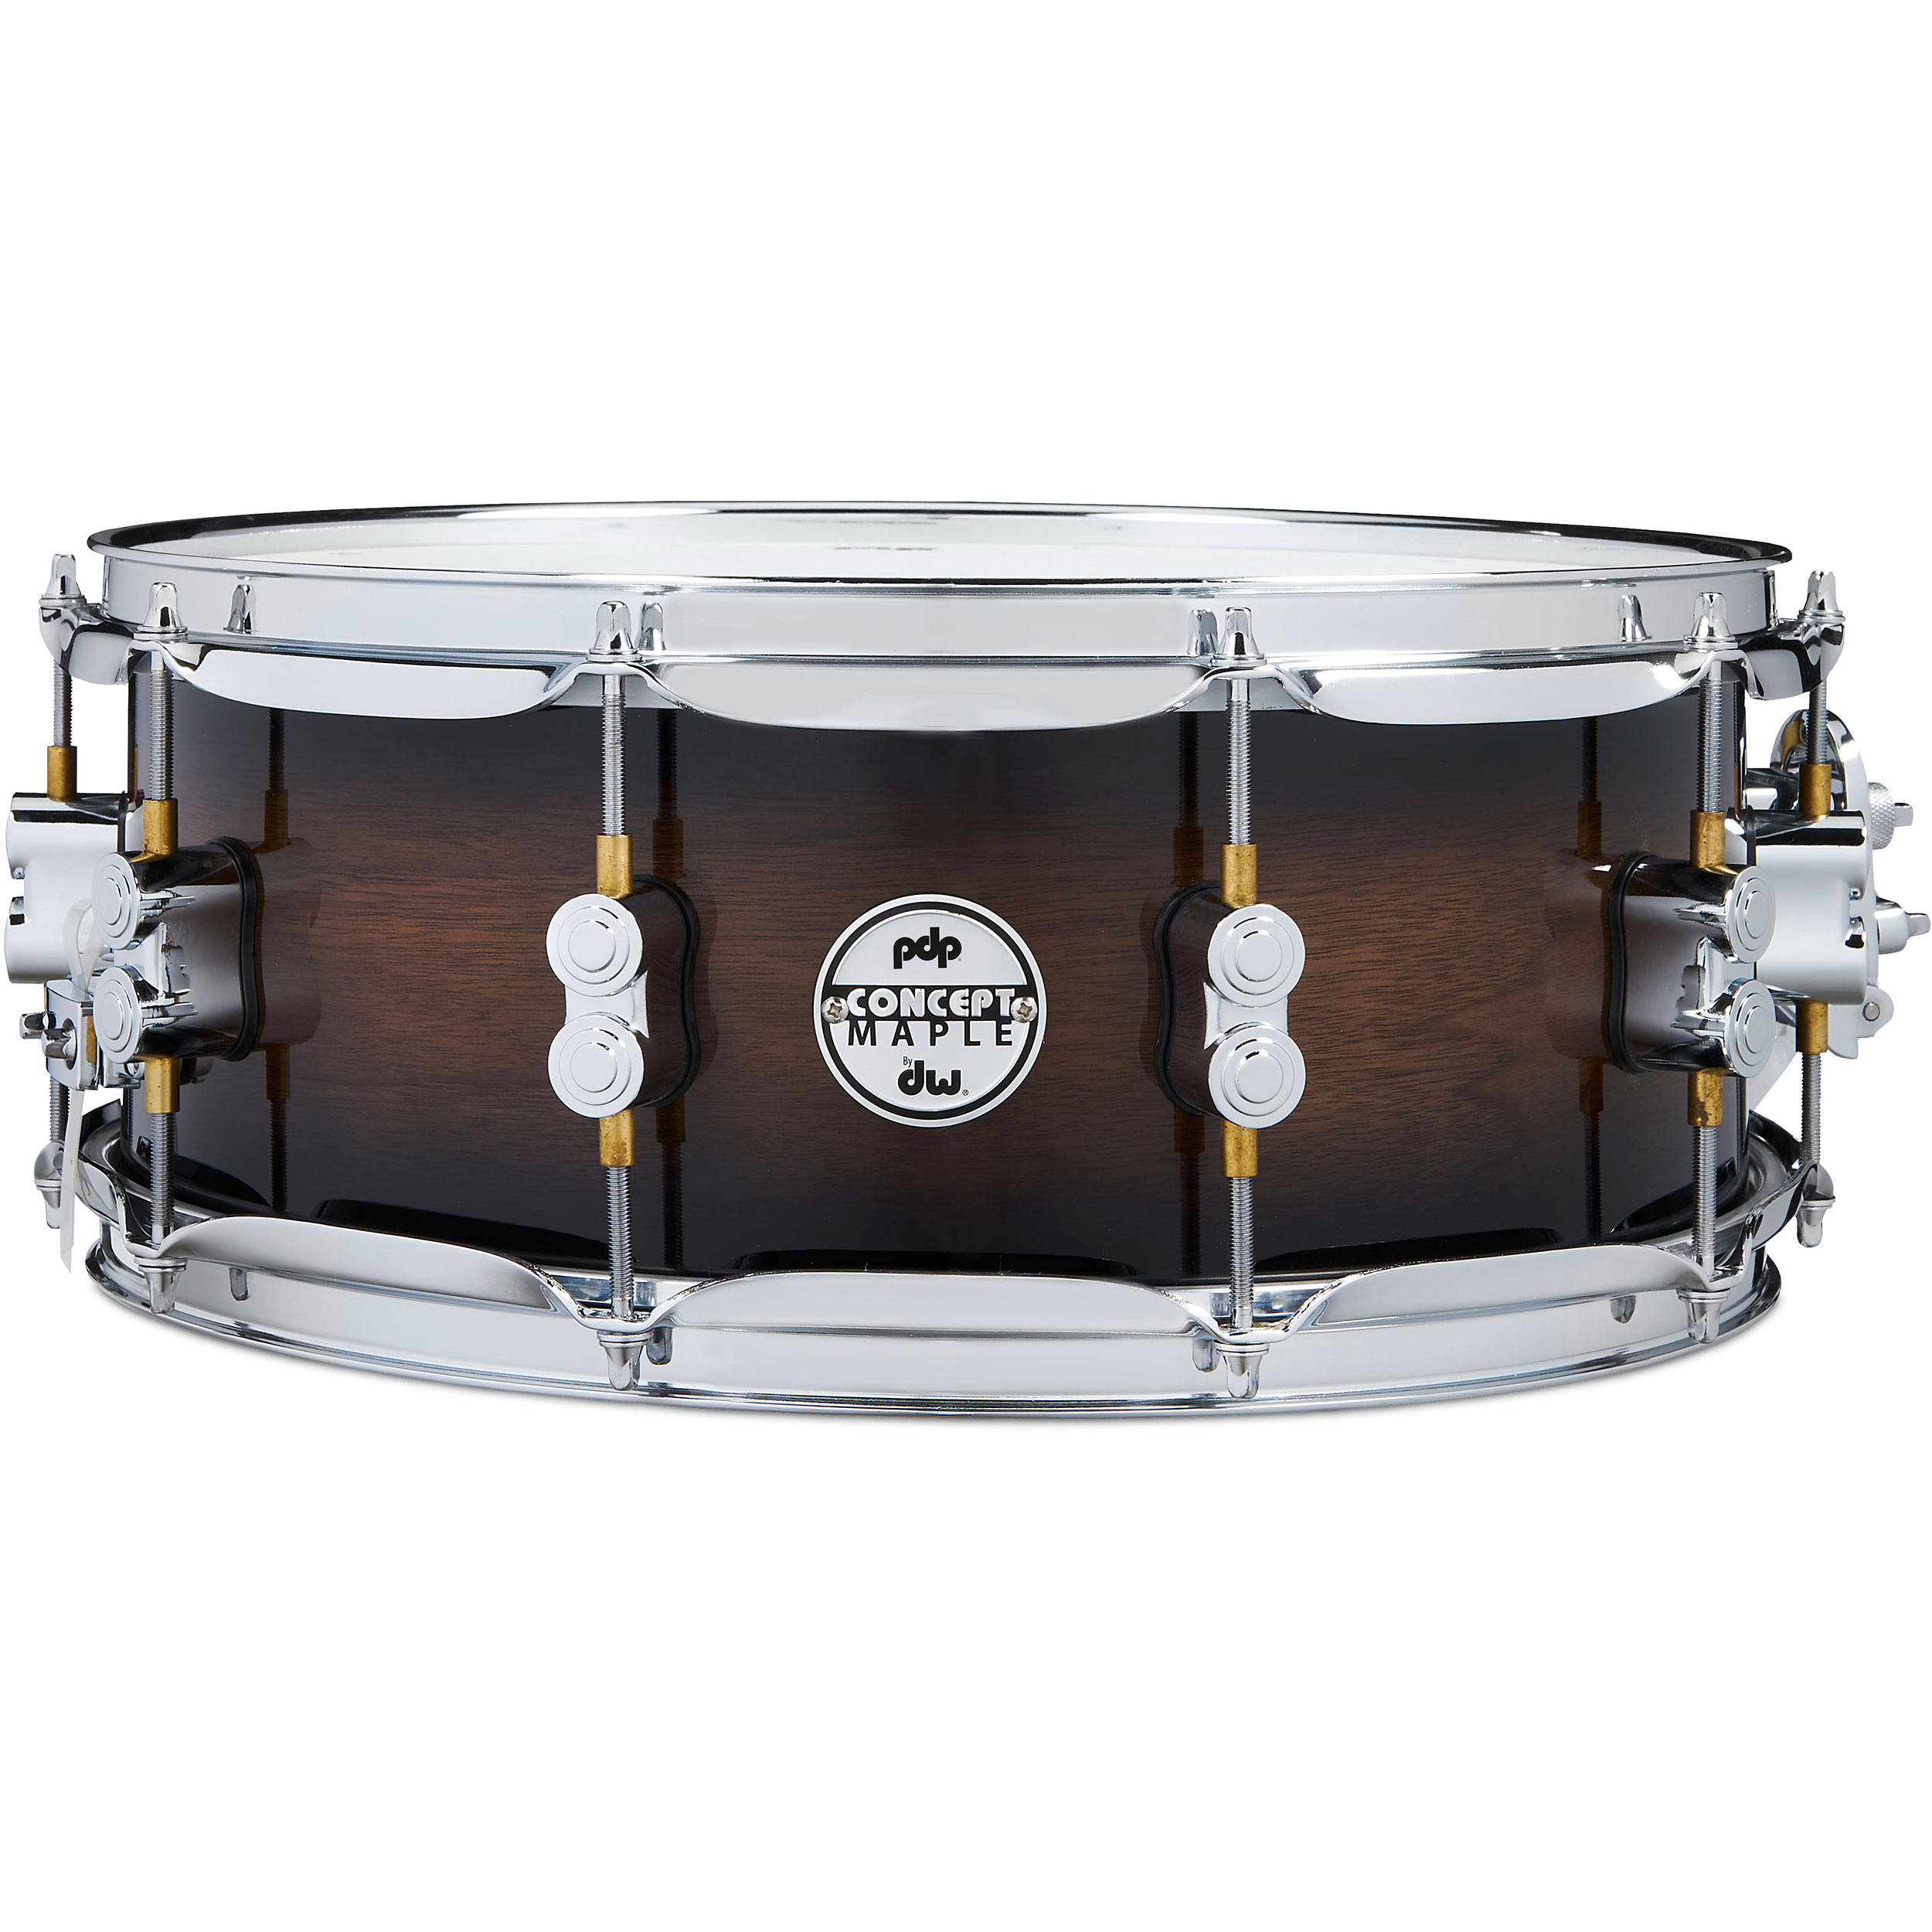 """PDP 5.5"""" x 14"""" Concept Exotic Snare Drum"""